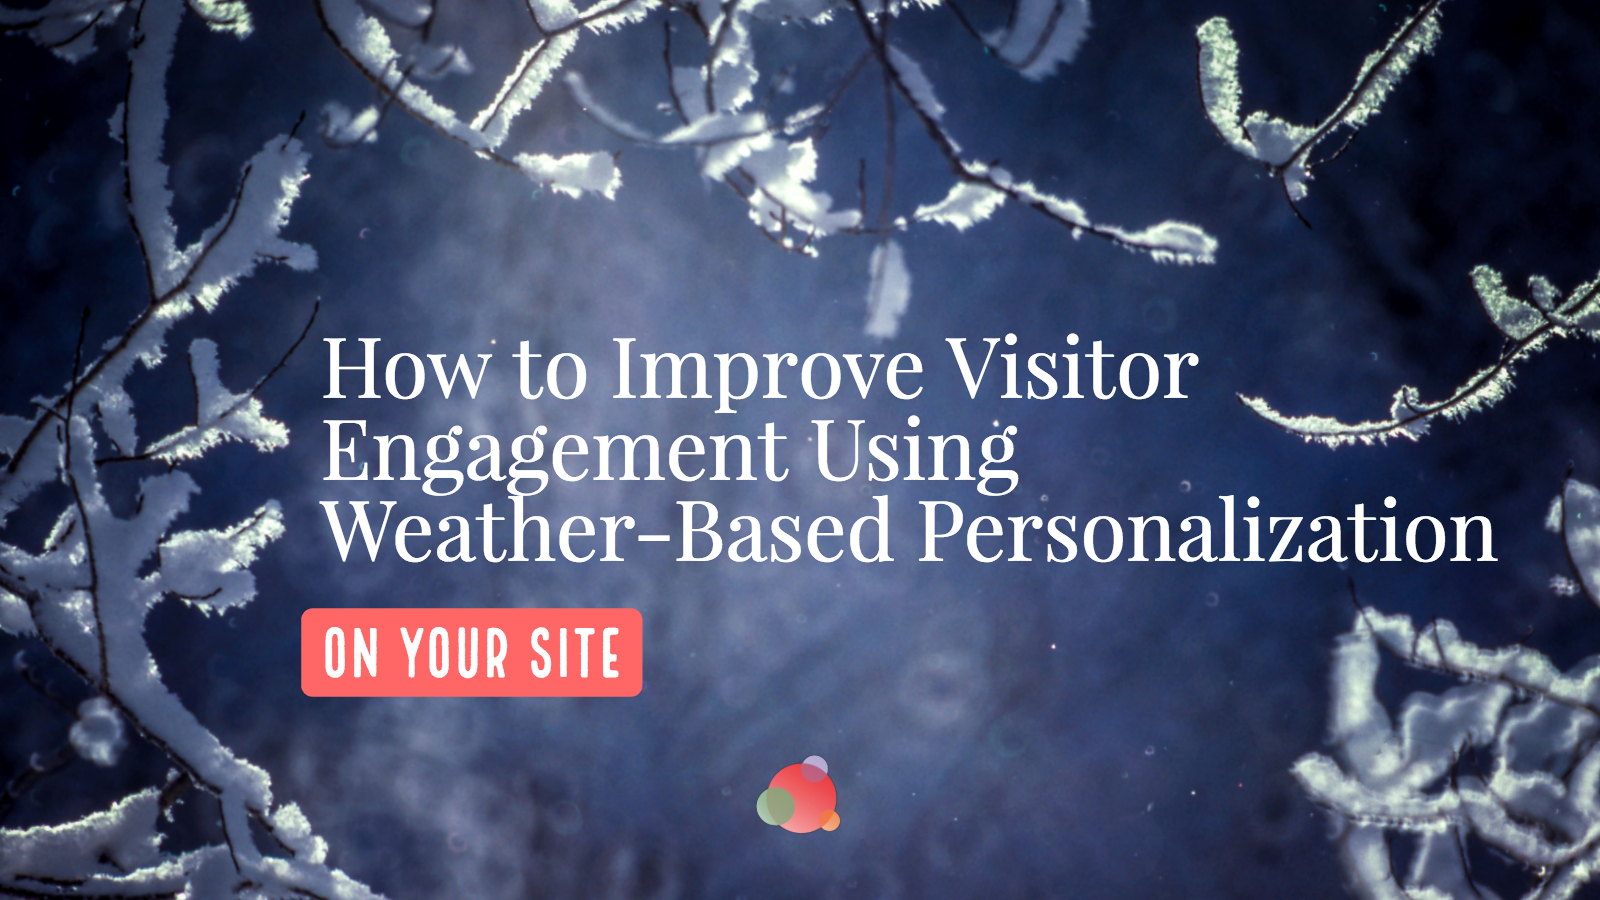 Weather-based Personalization Improves Visitor Engagement